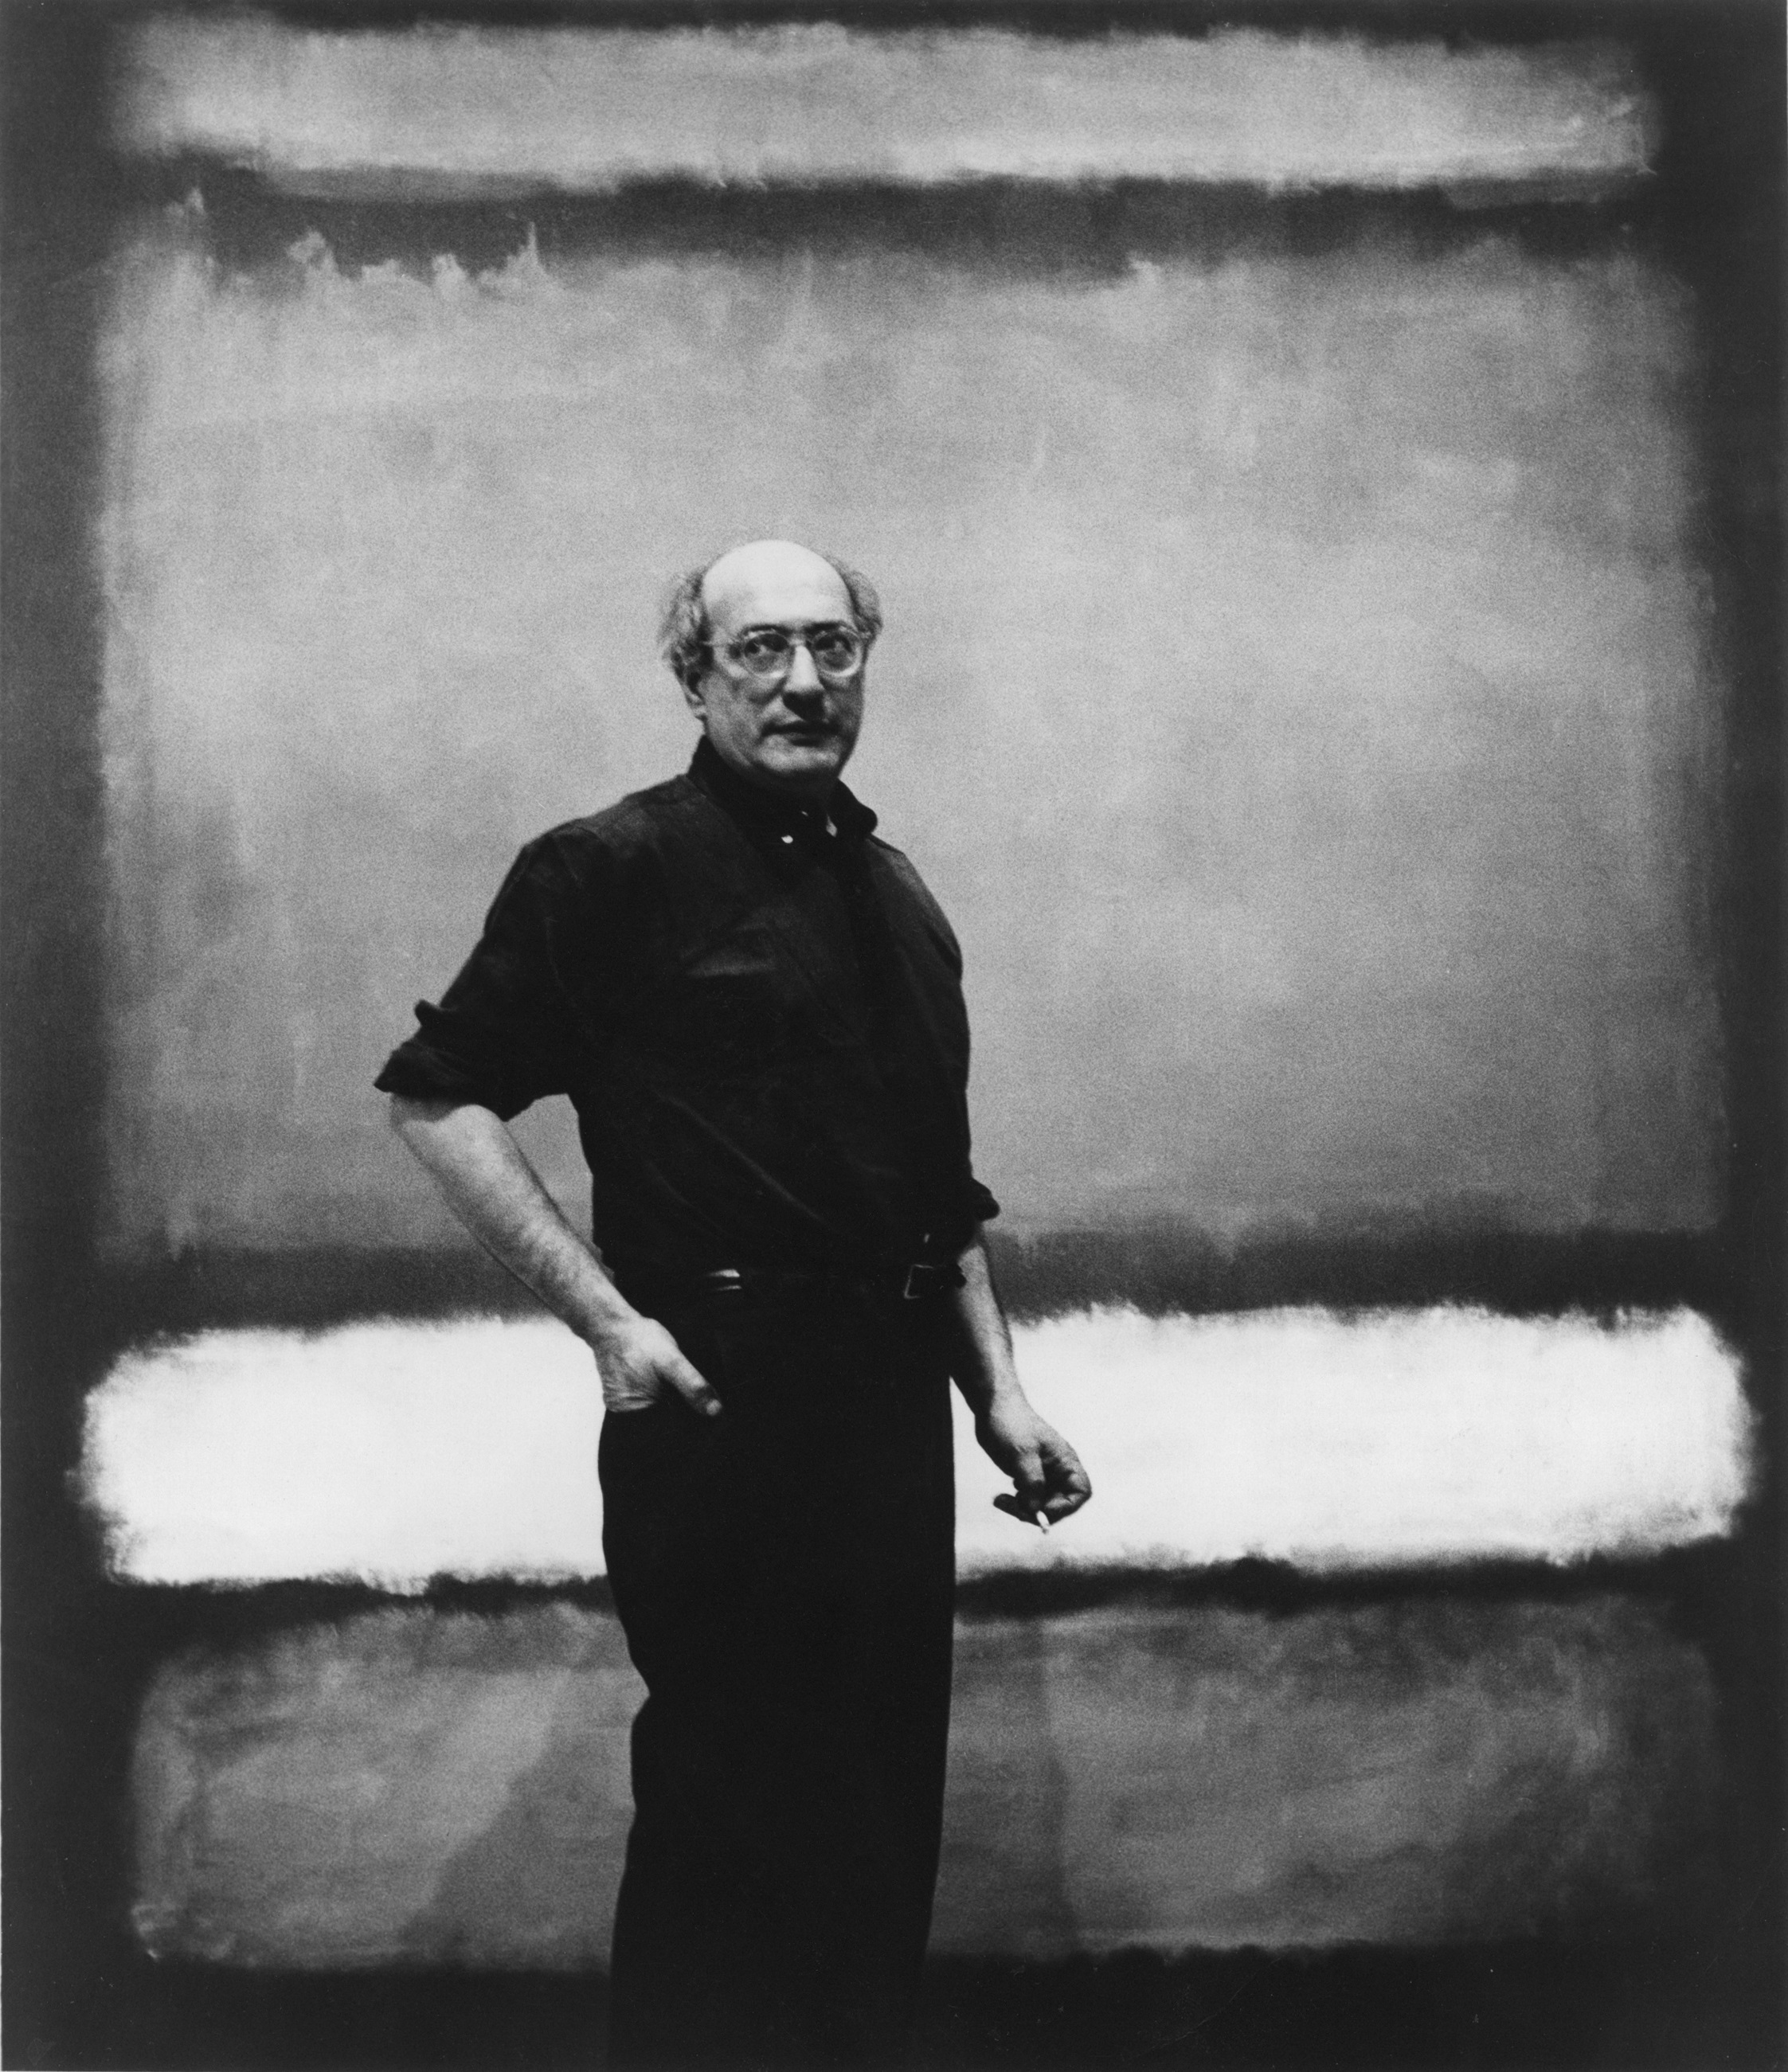 Mark Rothko with No. 7, 1960, photograph attributed to Regina Bogat, reproduced courtesy of The Estate of Mark Rothko courtesy Museum of Fine Arts Houston